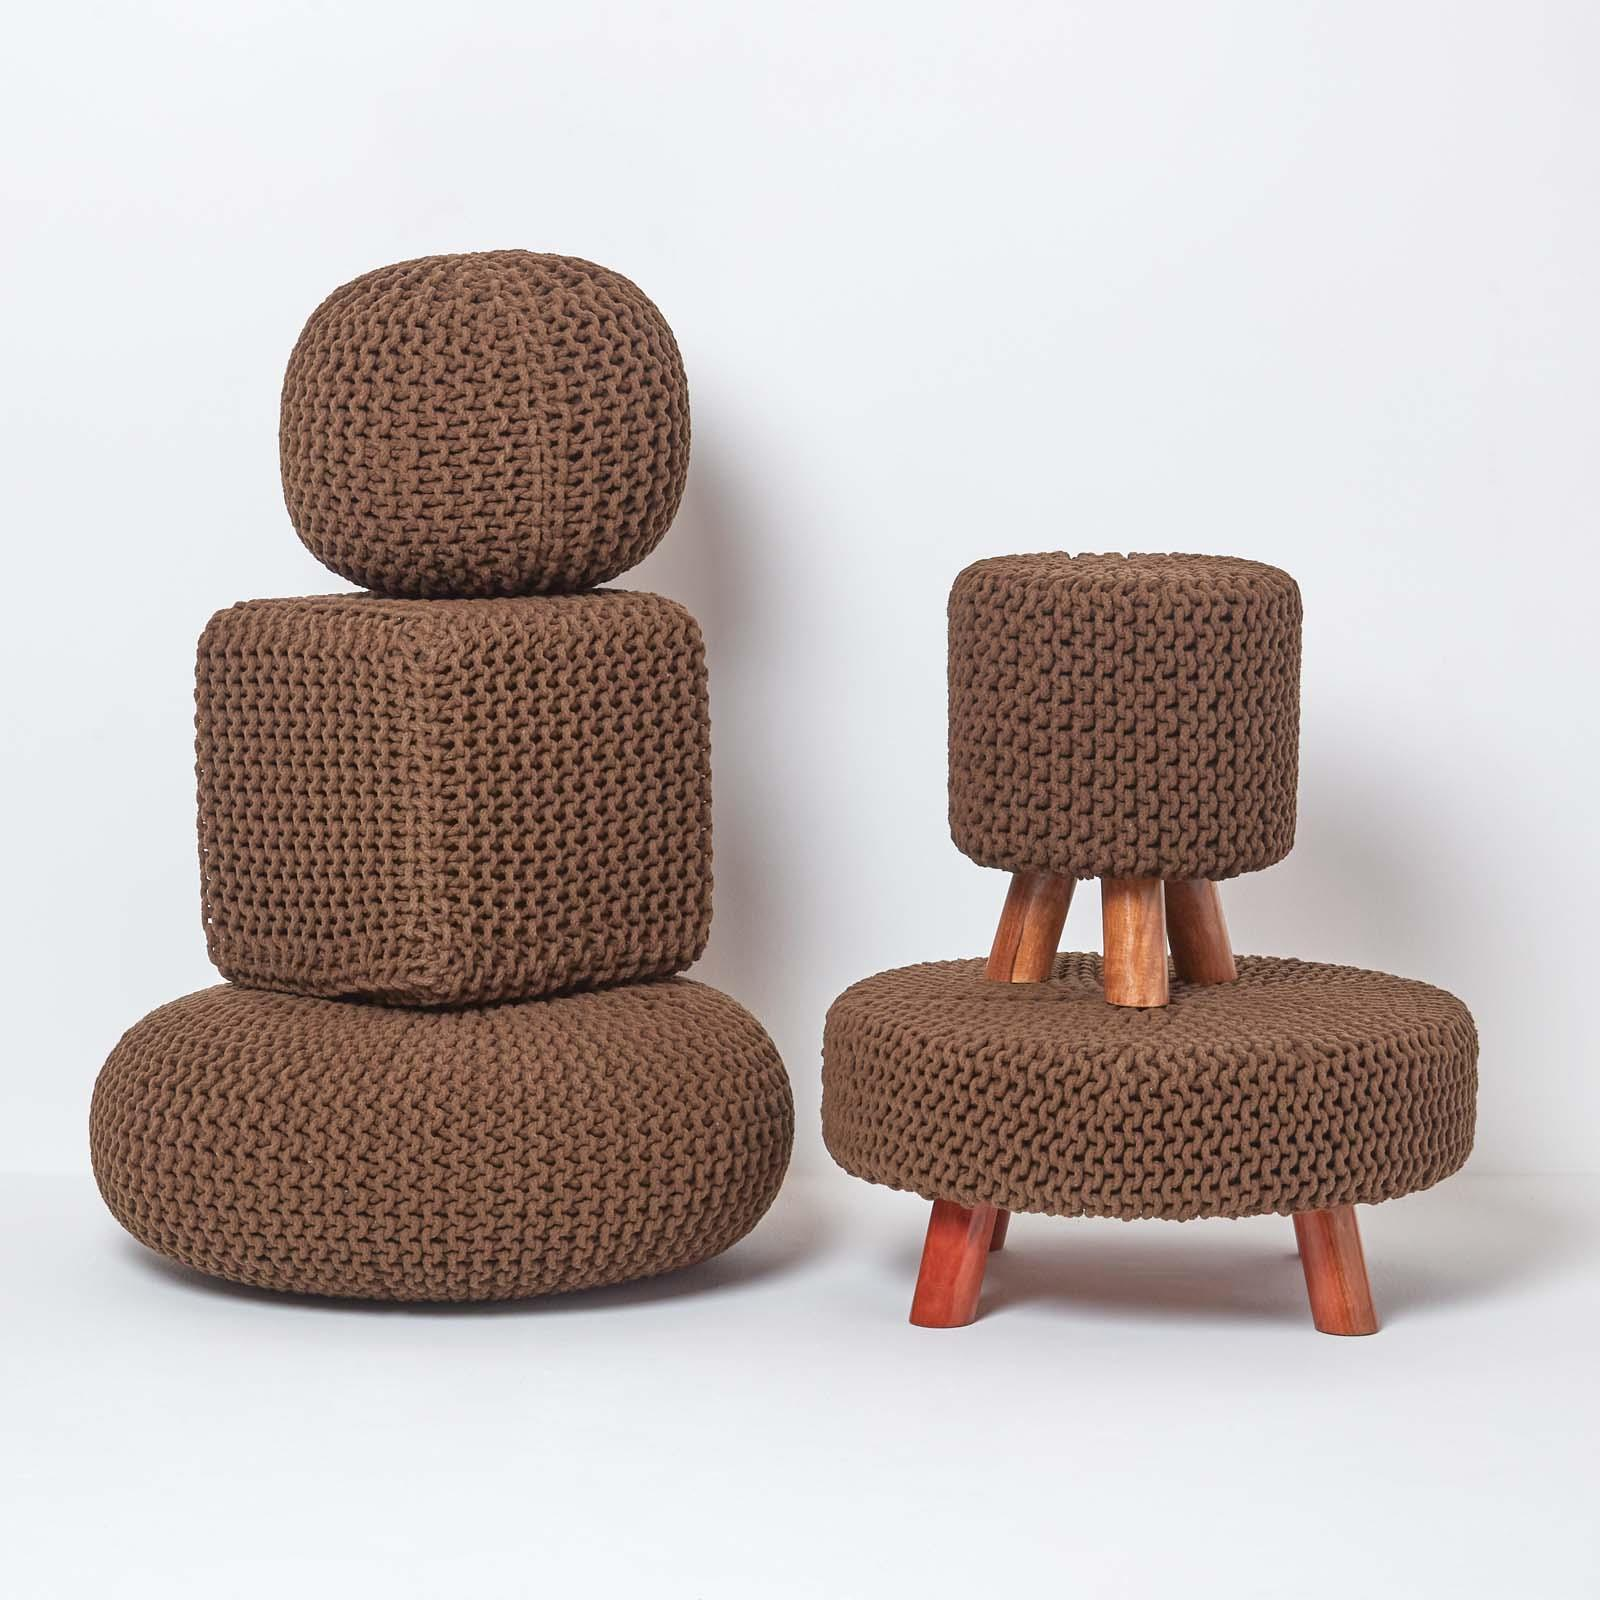 Hand-Knitted-100-Cotton-Pouffes-Round-Sphere-Or-Cube-Square-Chunky-Footstools thumbnail 37